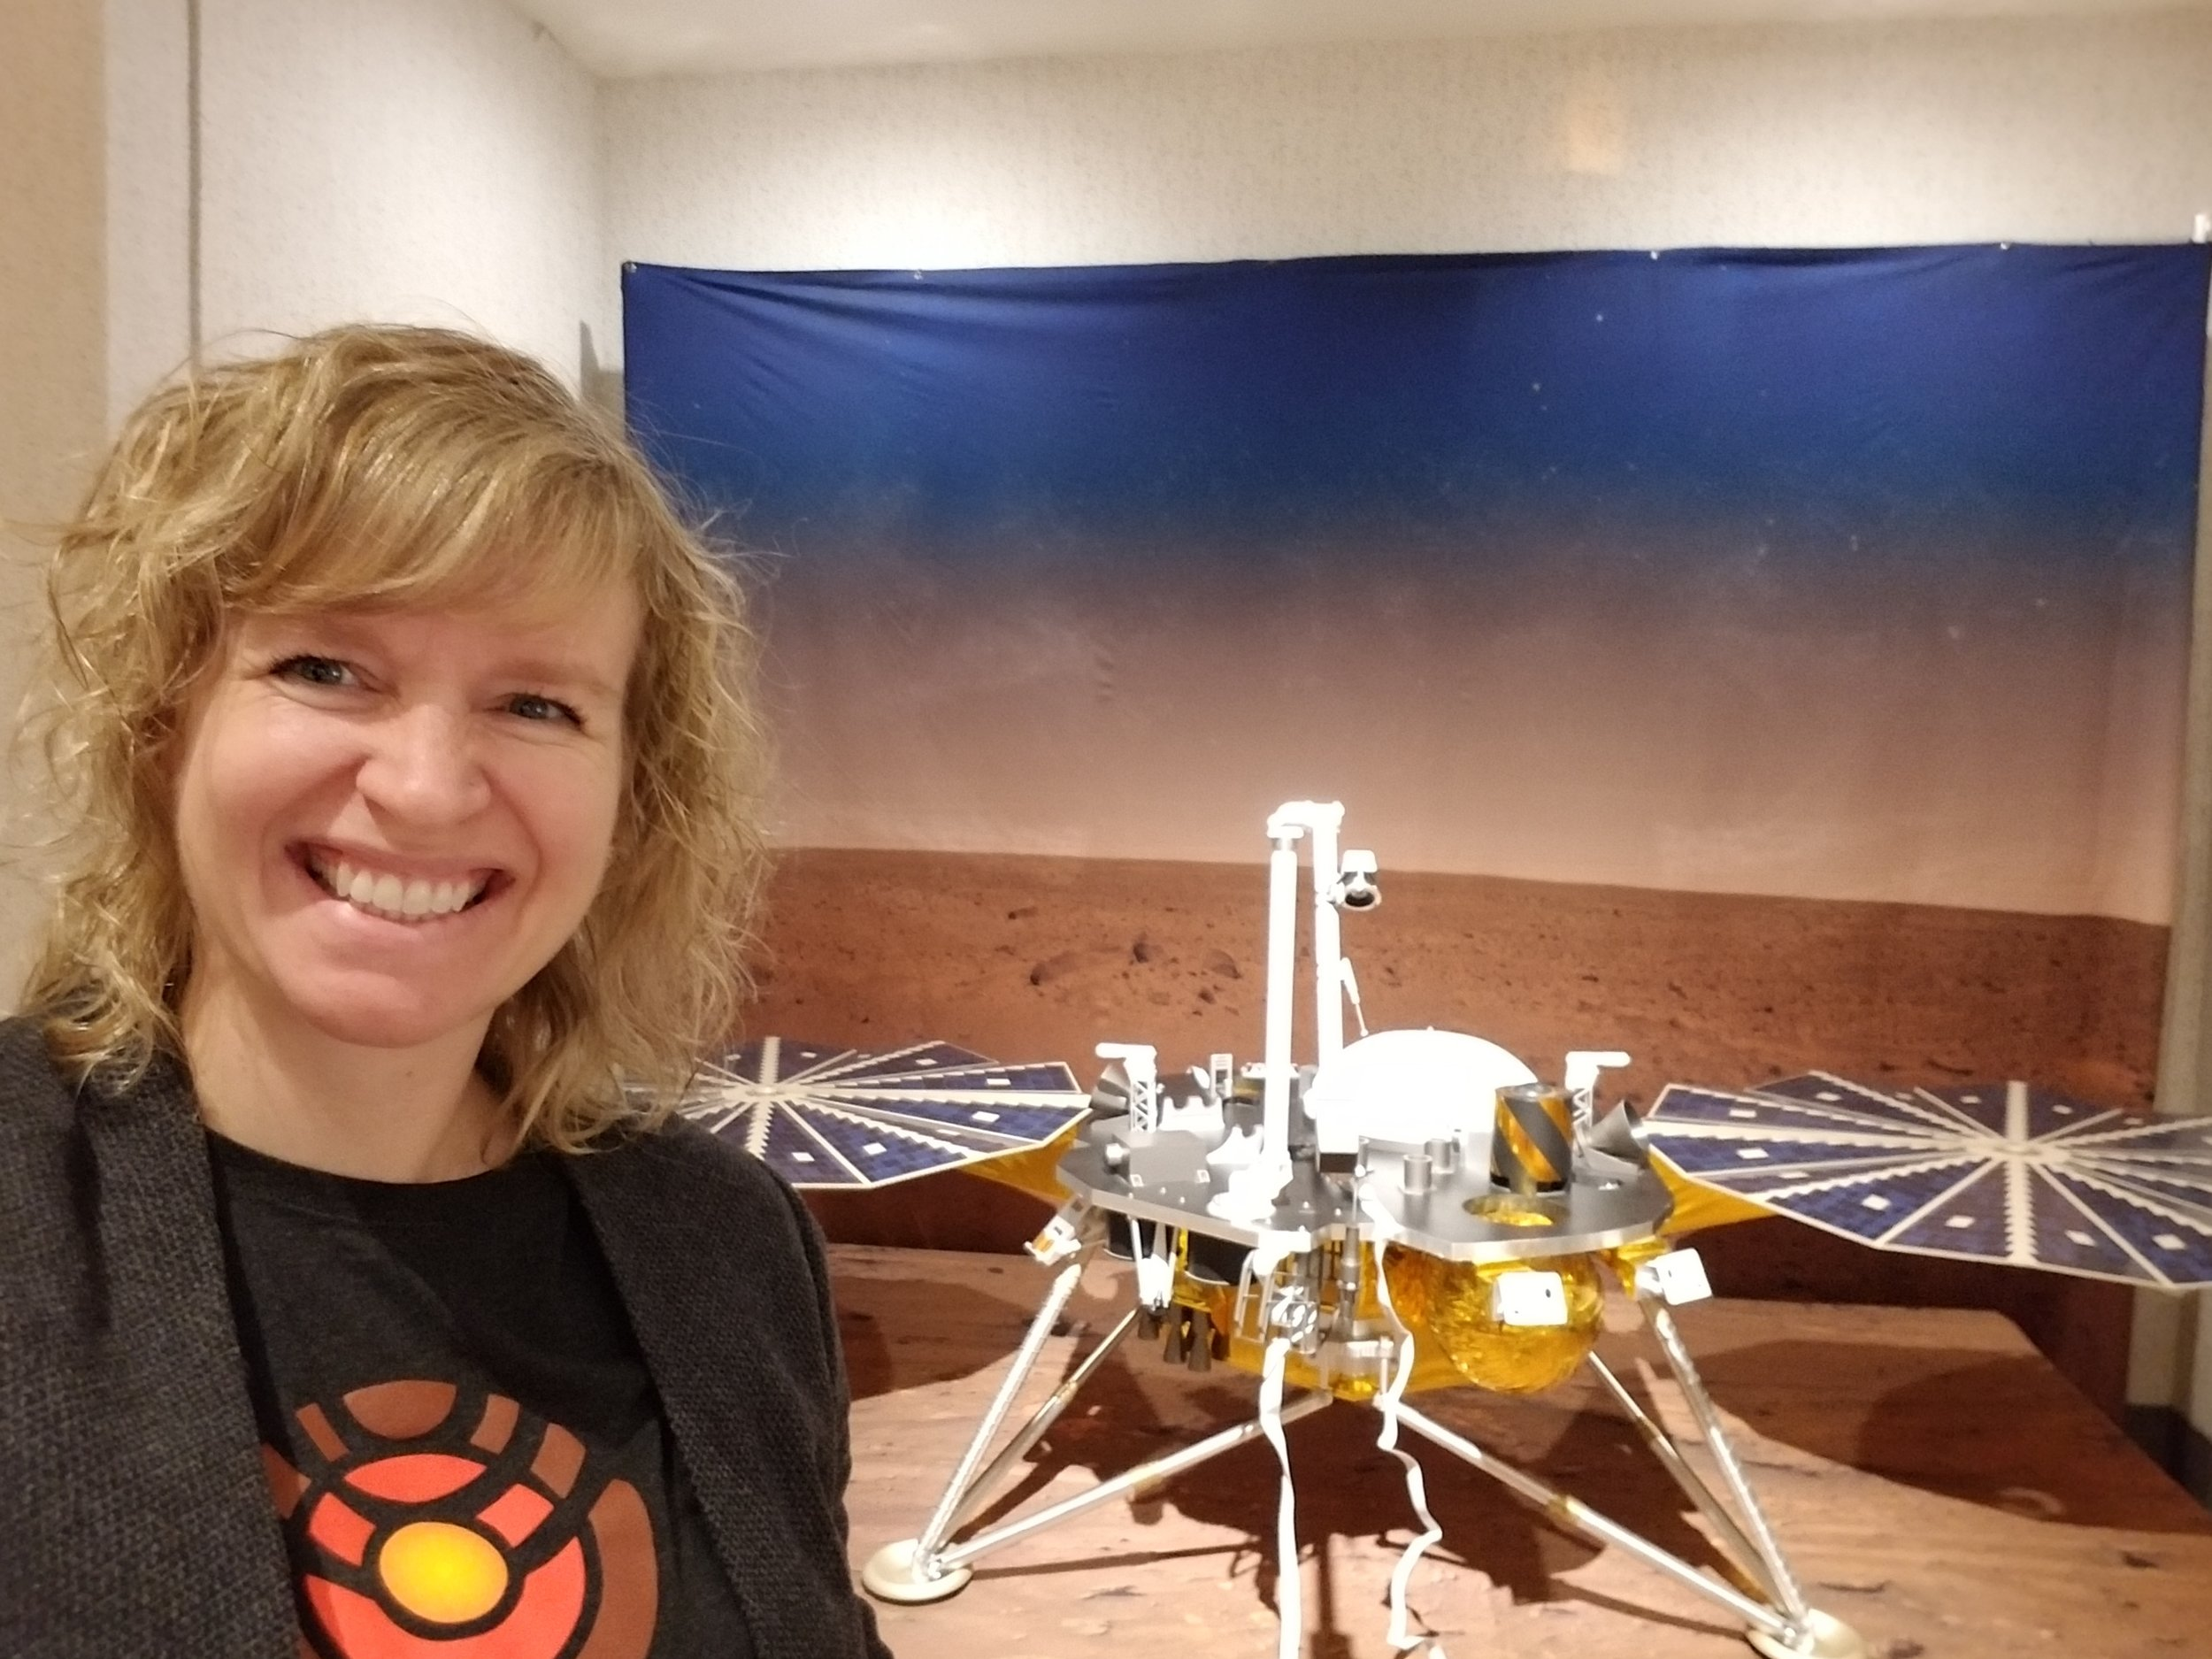 Dr. Ingrid Daubar  returns to the show to tell us about the  InSight  mission to Mars. InSight carries a seismometer and a self-hammering heat probe, and will explore the interior of the planet. She tells us what it was like to be at InSight's launch, and explains how the mission's landing site was selected.